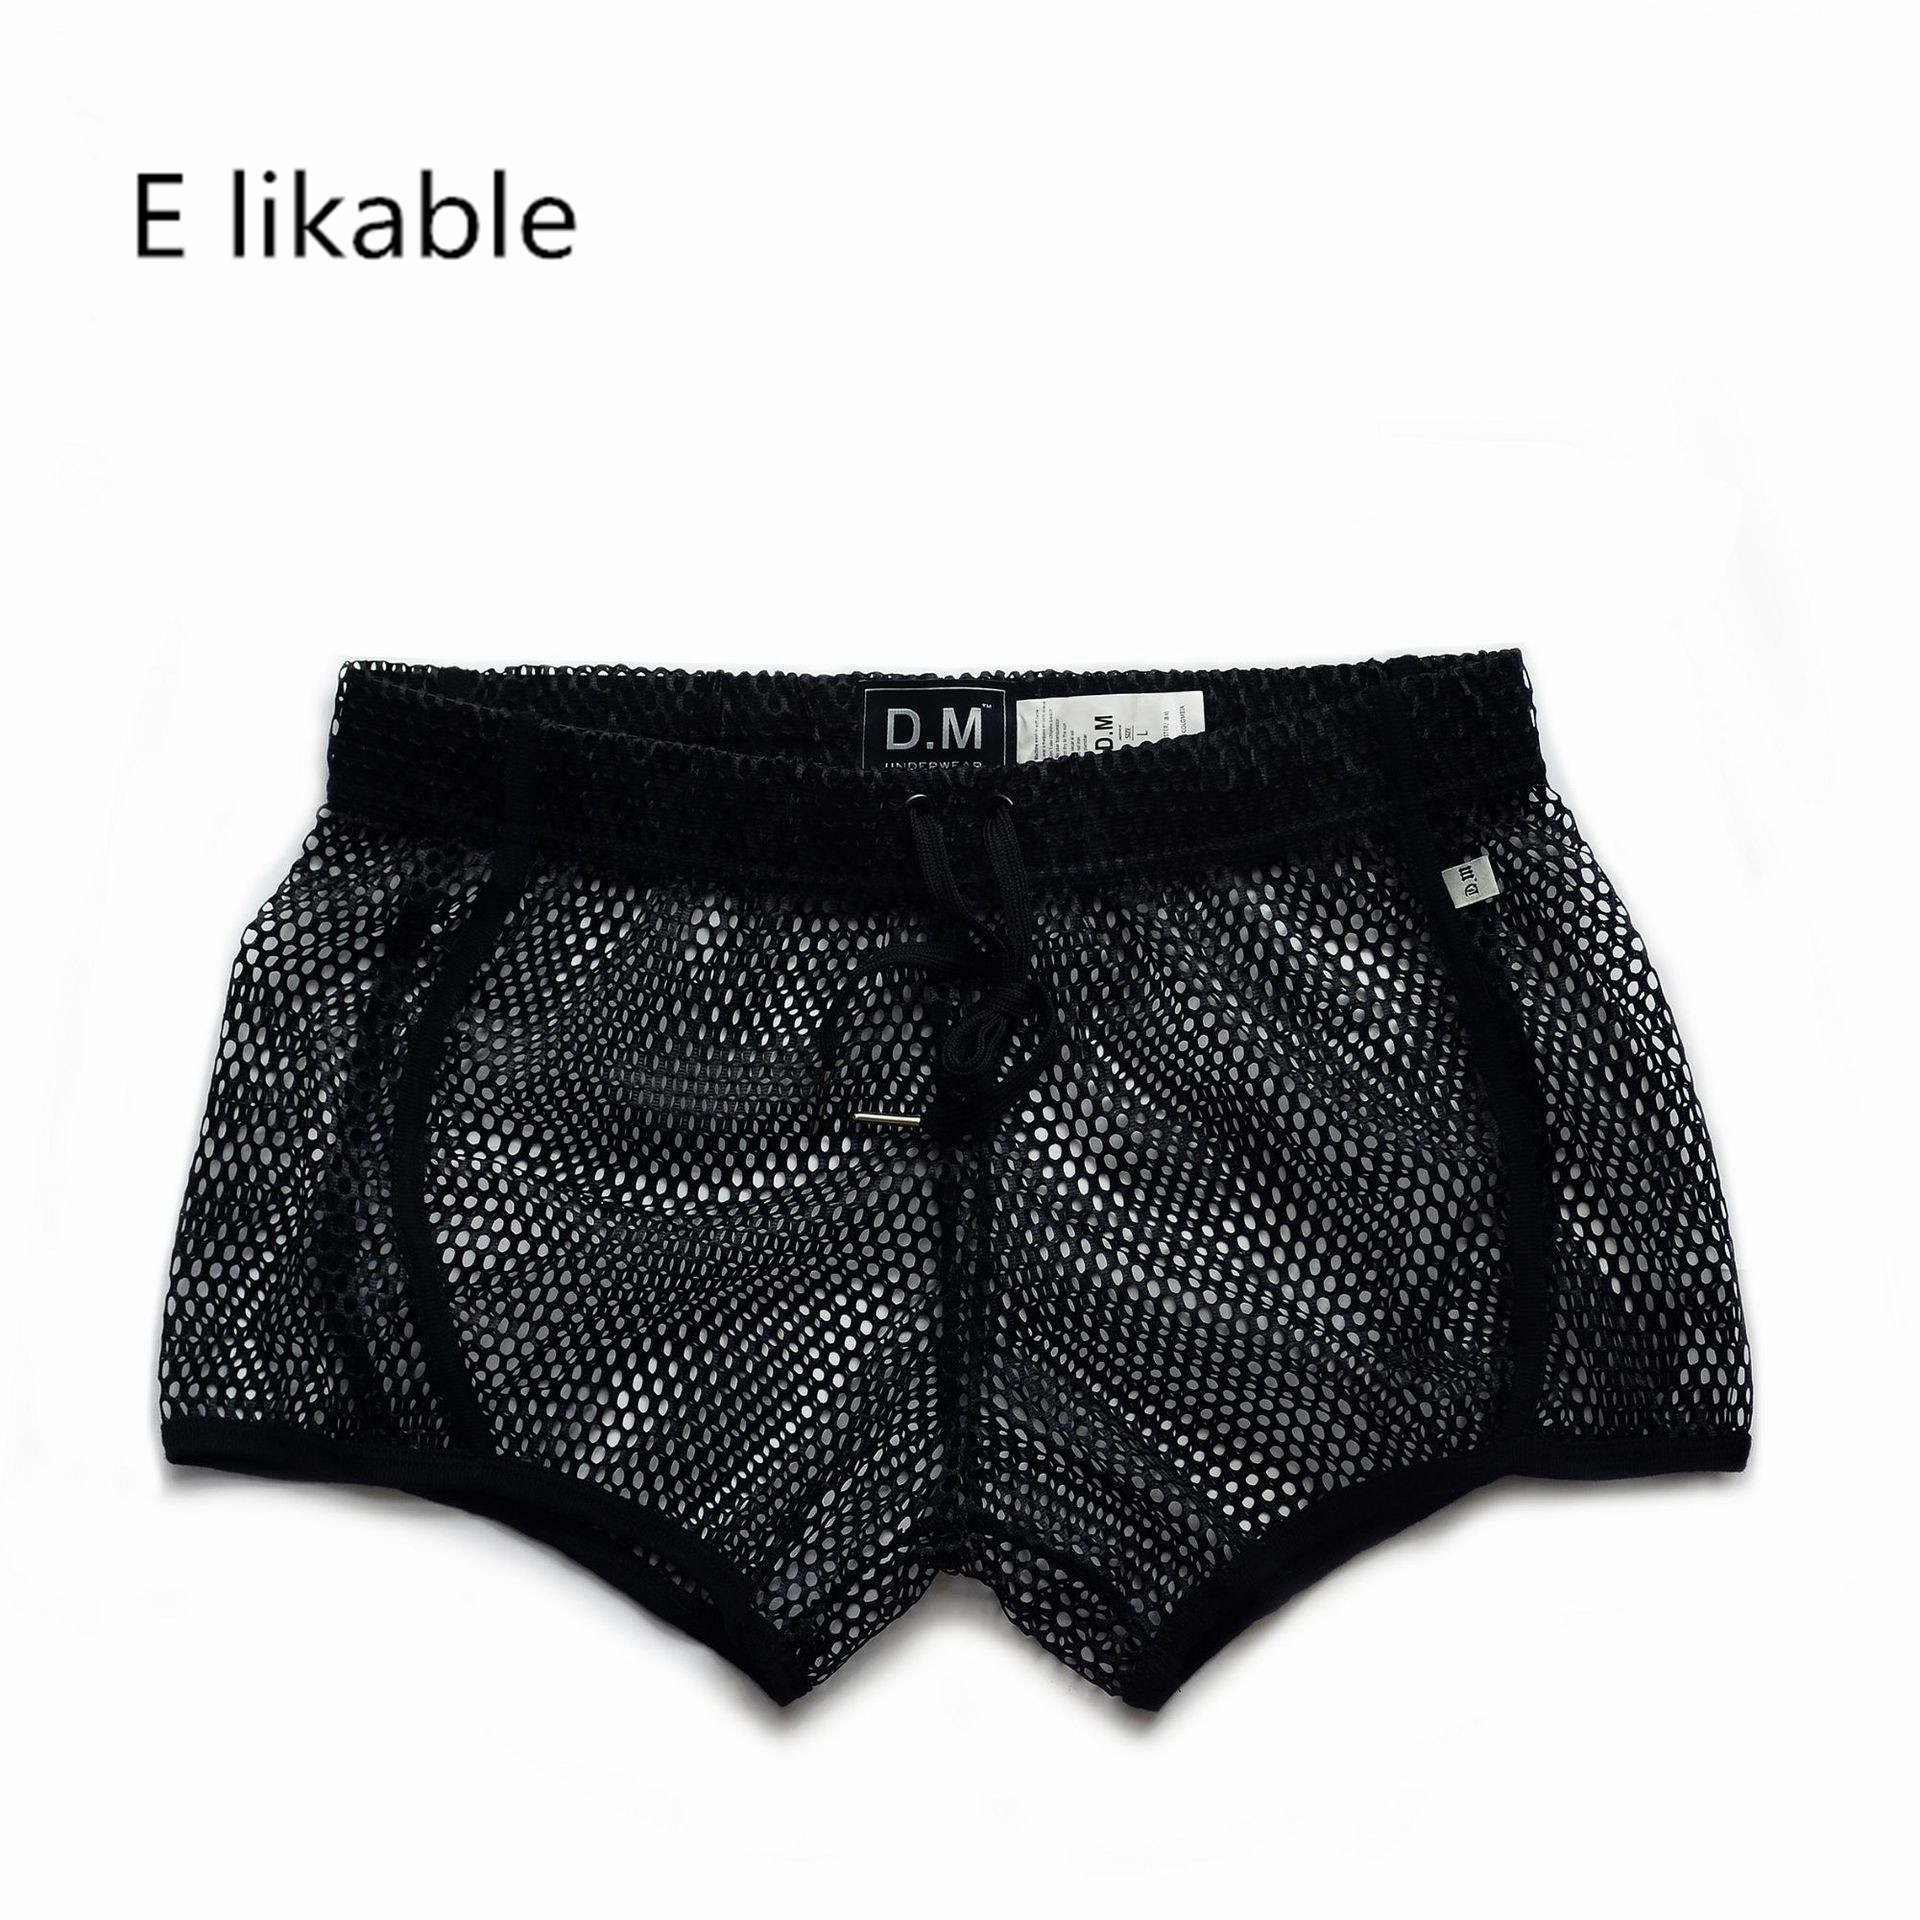 E Likable Europe And The United States Youth Fashion Men's Underwear Comfortable Breathable Loose Home Sexy Low Waist Boyshort